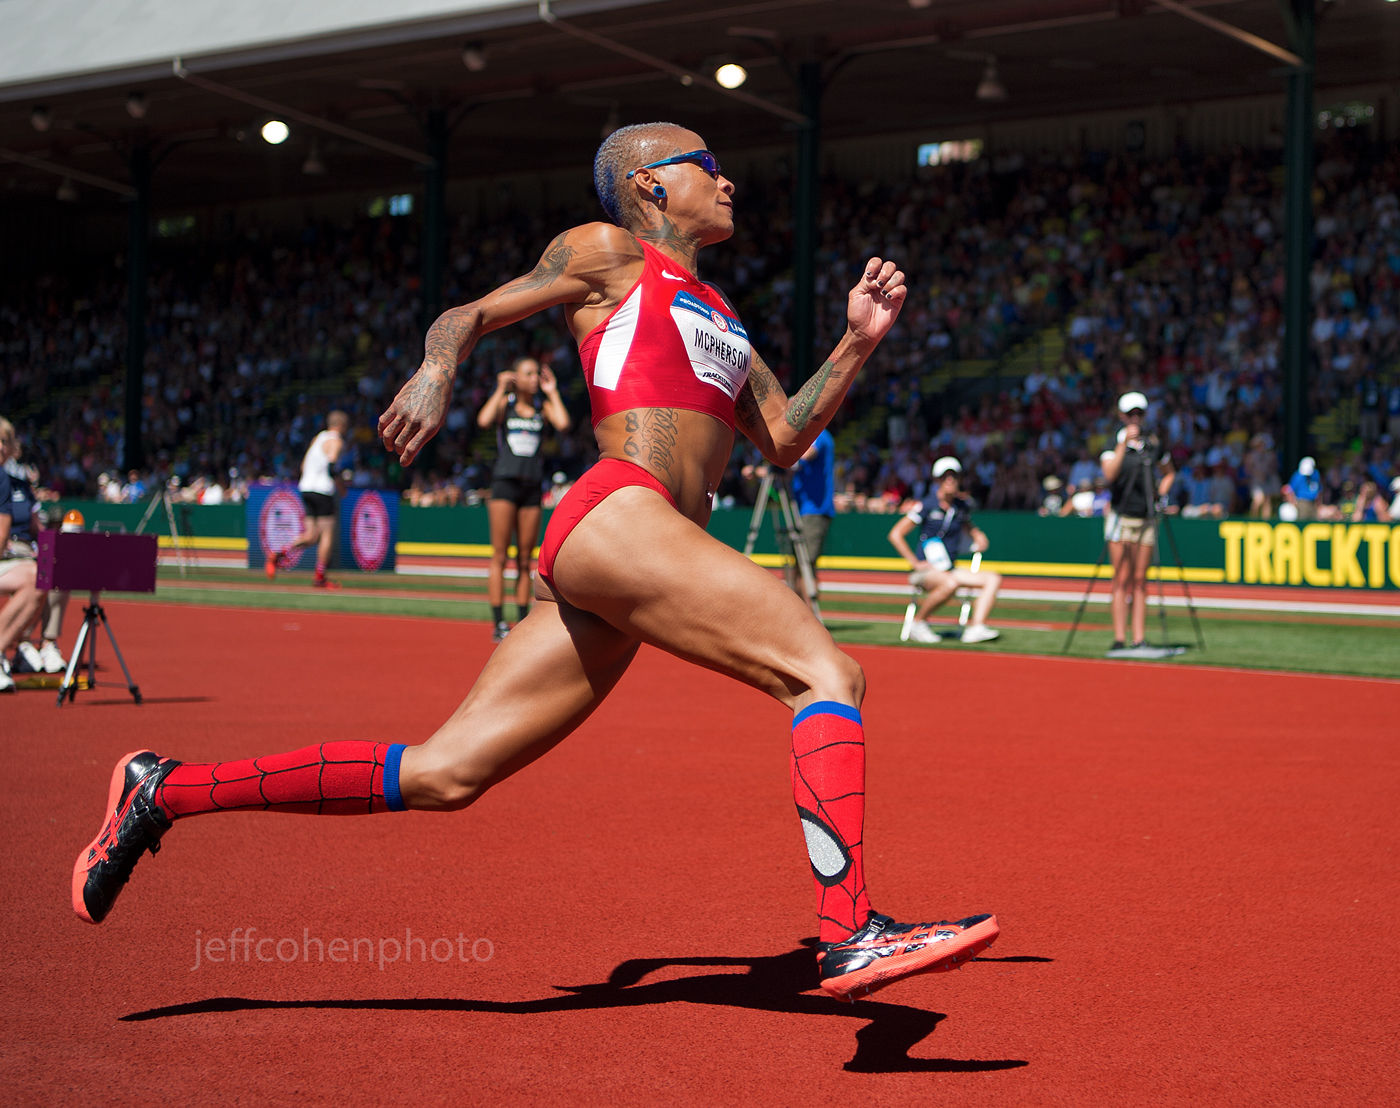 1r2016_oly_trials_day_3_mcpherson_hjw_jeff_cohen_photo_11756_web.jpg